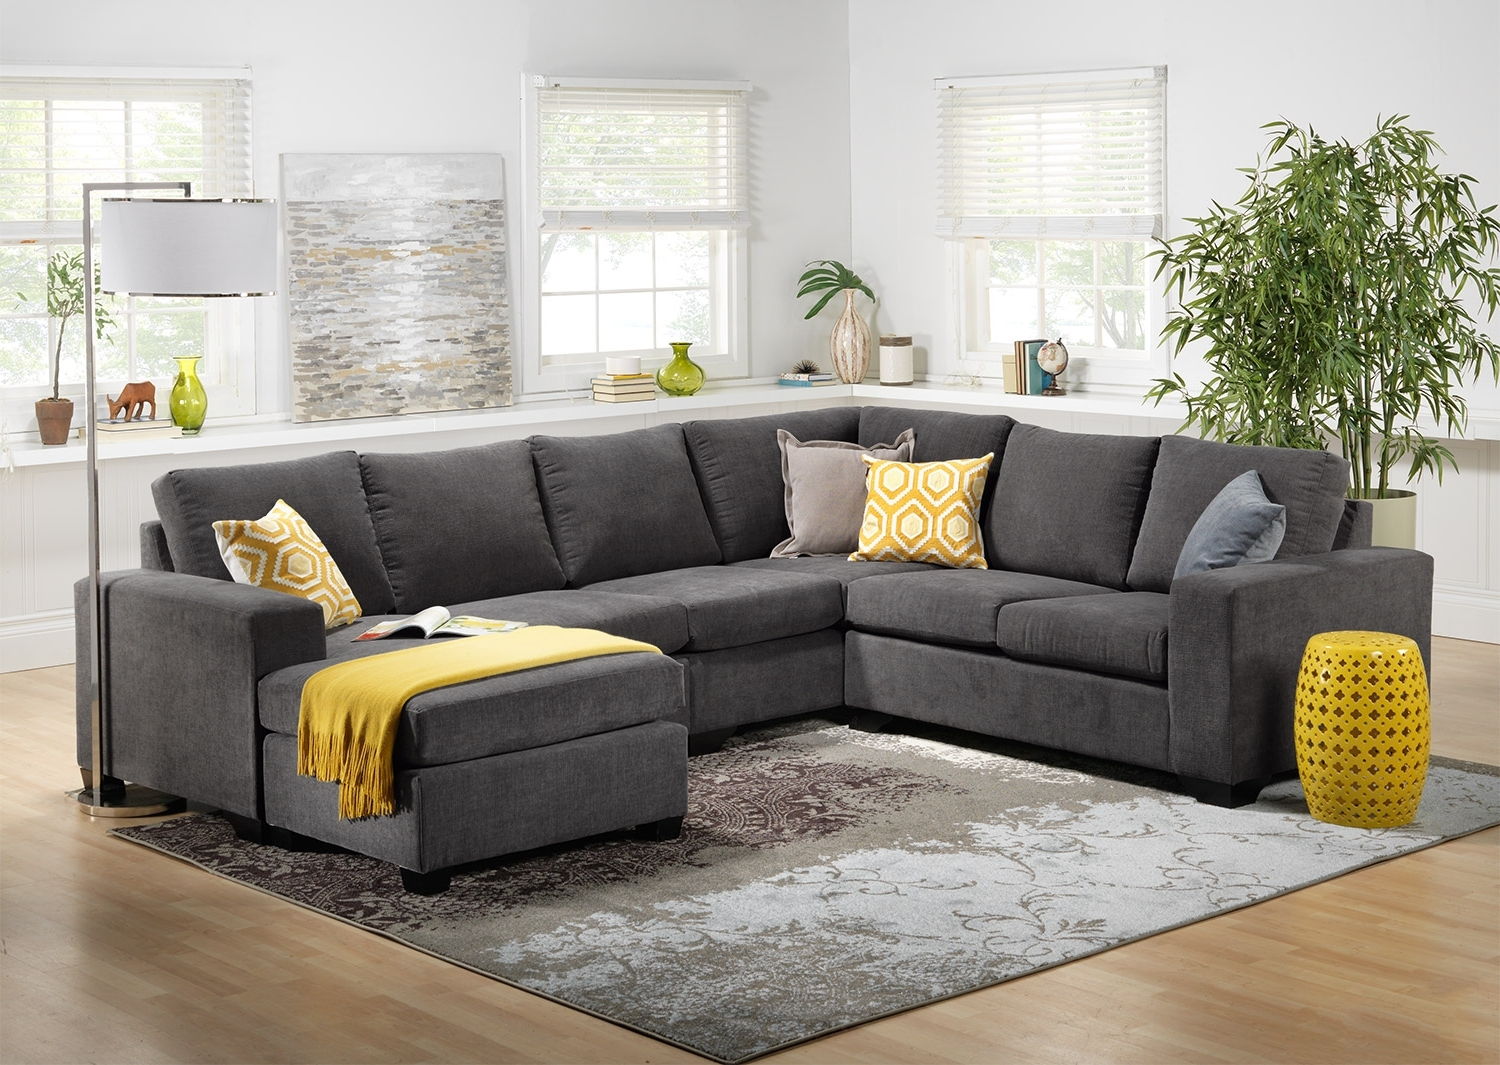 Used Sectional Sofas For Sale Edmonton Best Home Furniture Ideas in Current Sectional Sofas At Edmonton